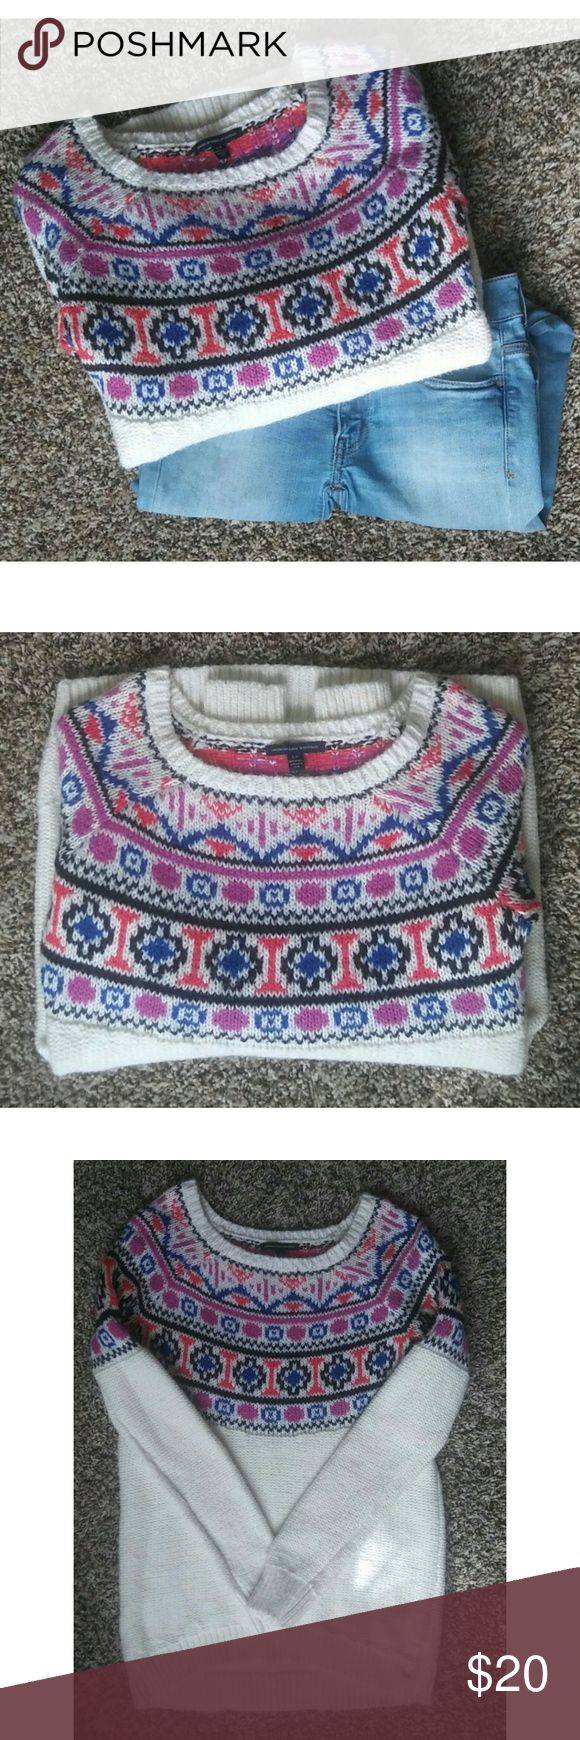 American Eagle Outfitters Tribal Print Sweater Brand: American Eagle Outfitters Size: Small Material: 57% Cotton; 33% Acyrlic; 10%Polyester  This sweater is perfect for the chilly season, its a size small and can fit all sizes up to at least a medium. This sweater is made for comfort as well as style so it will fit slightly bigger on a size XS or S but that's how its been made to complete your look!  No blemishes no defects.  Since it is made mostly of cotton, it easily attracts lint- a lint…